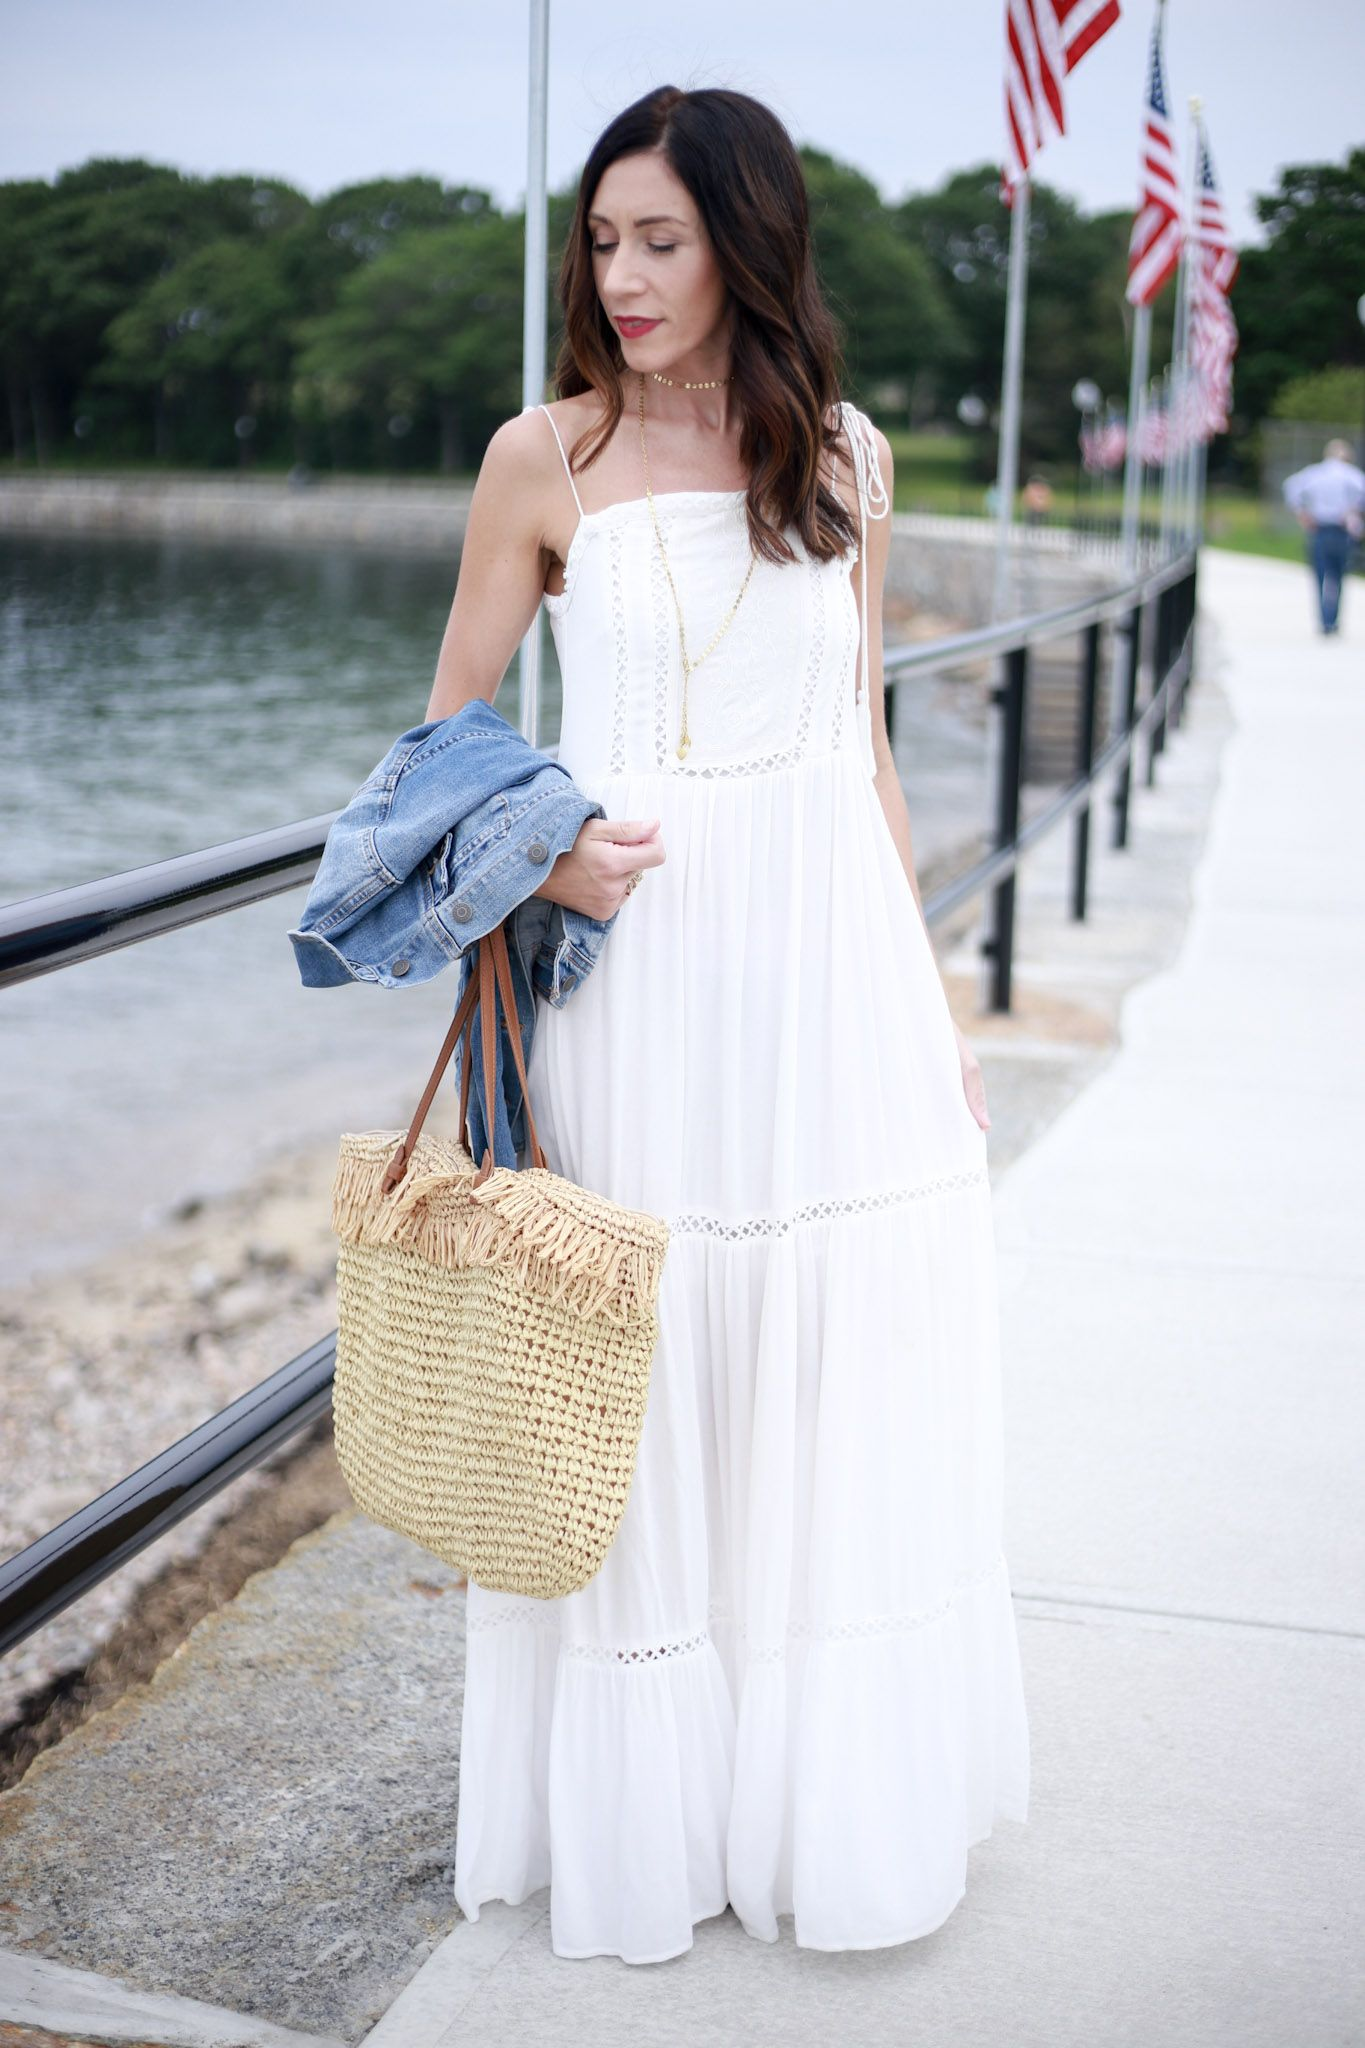 Pin By Pam Howe On Maxi Dresses 4th Of July Outfits White Maxi Dress Outfit Maxi Outfits [ 2048 x 1365 Pixel ]